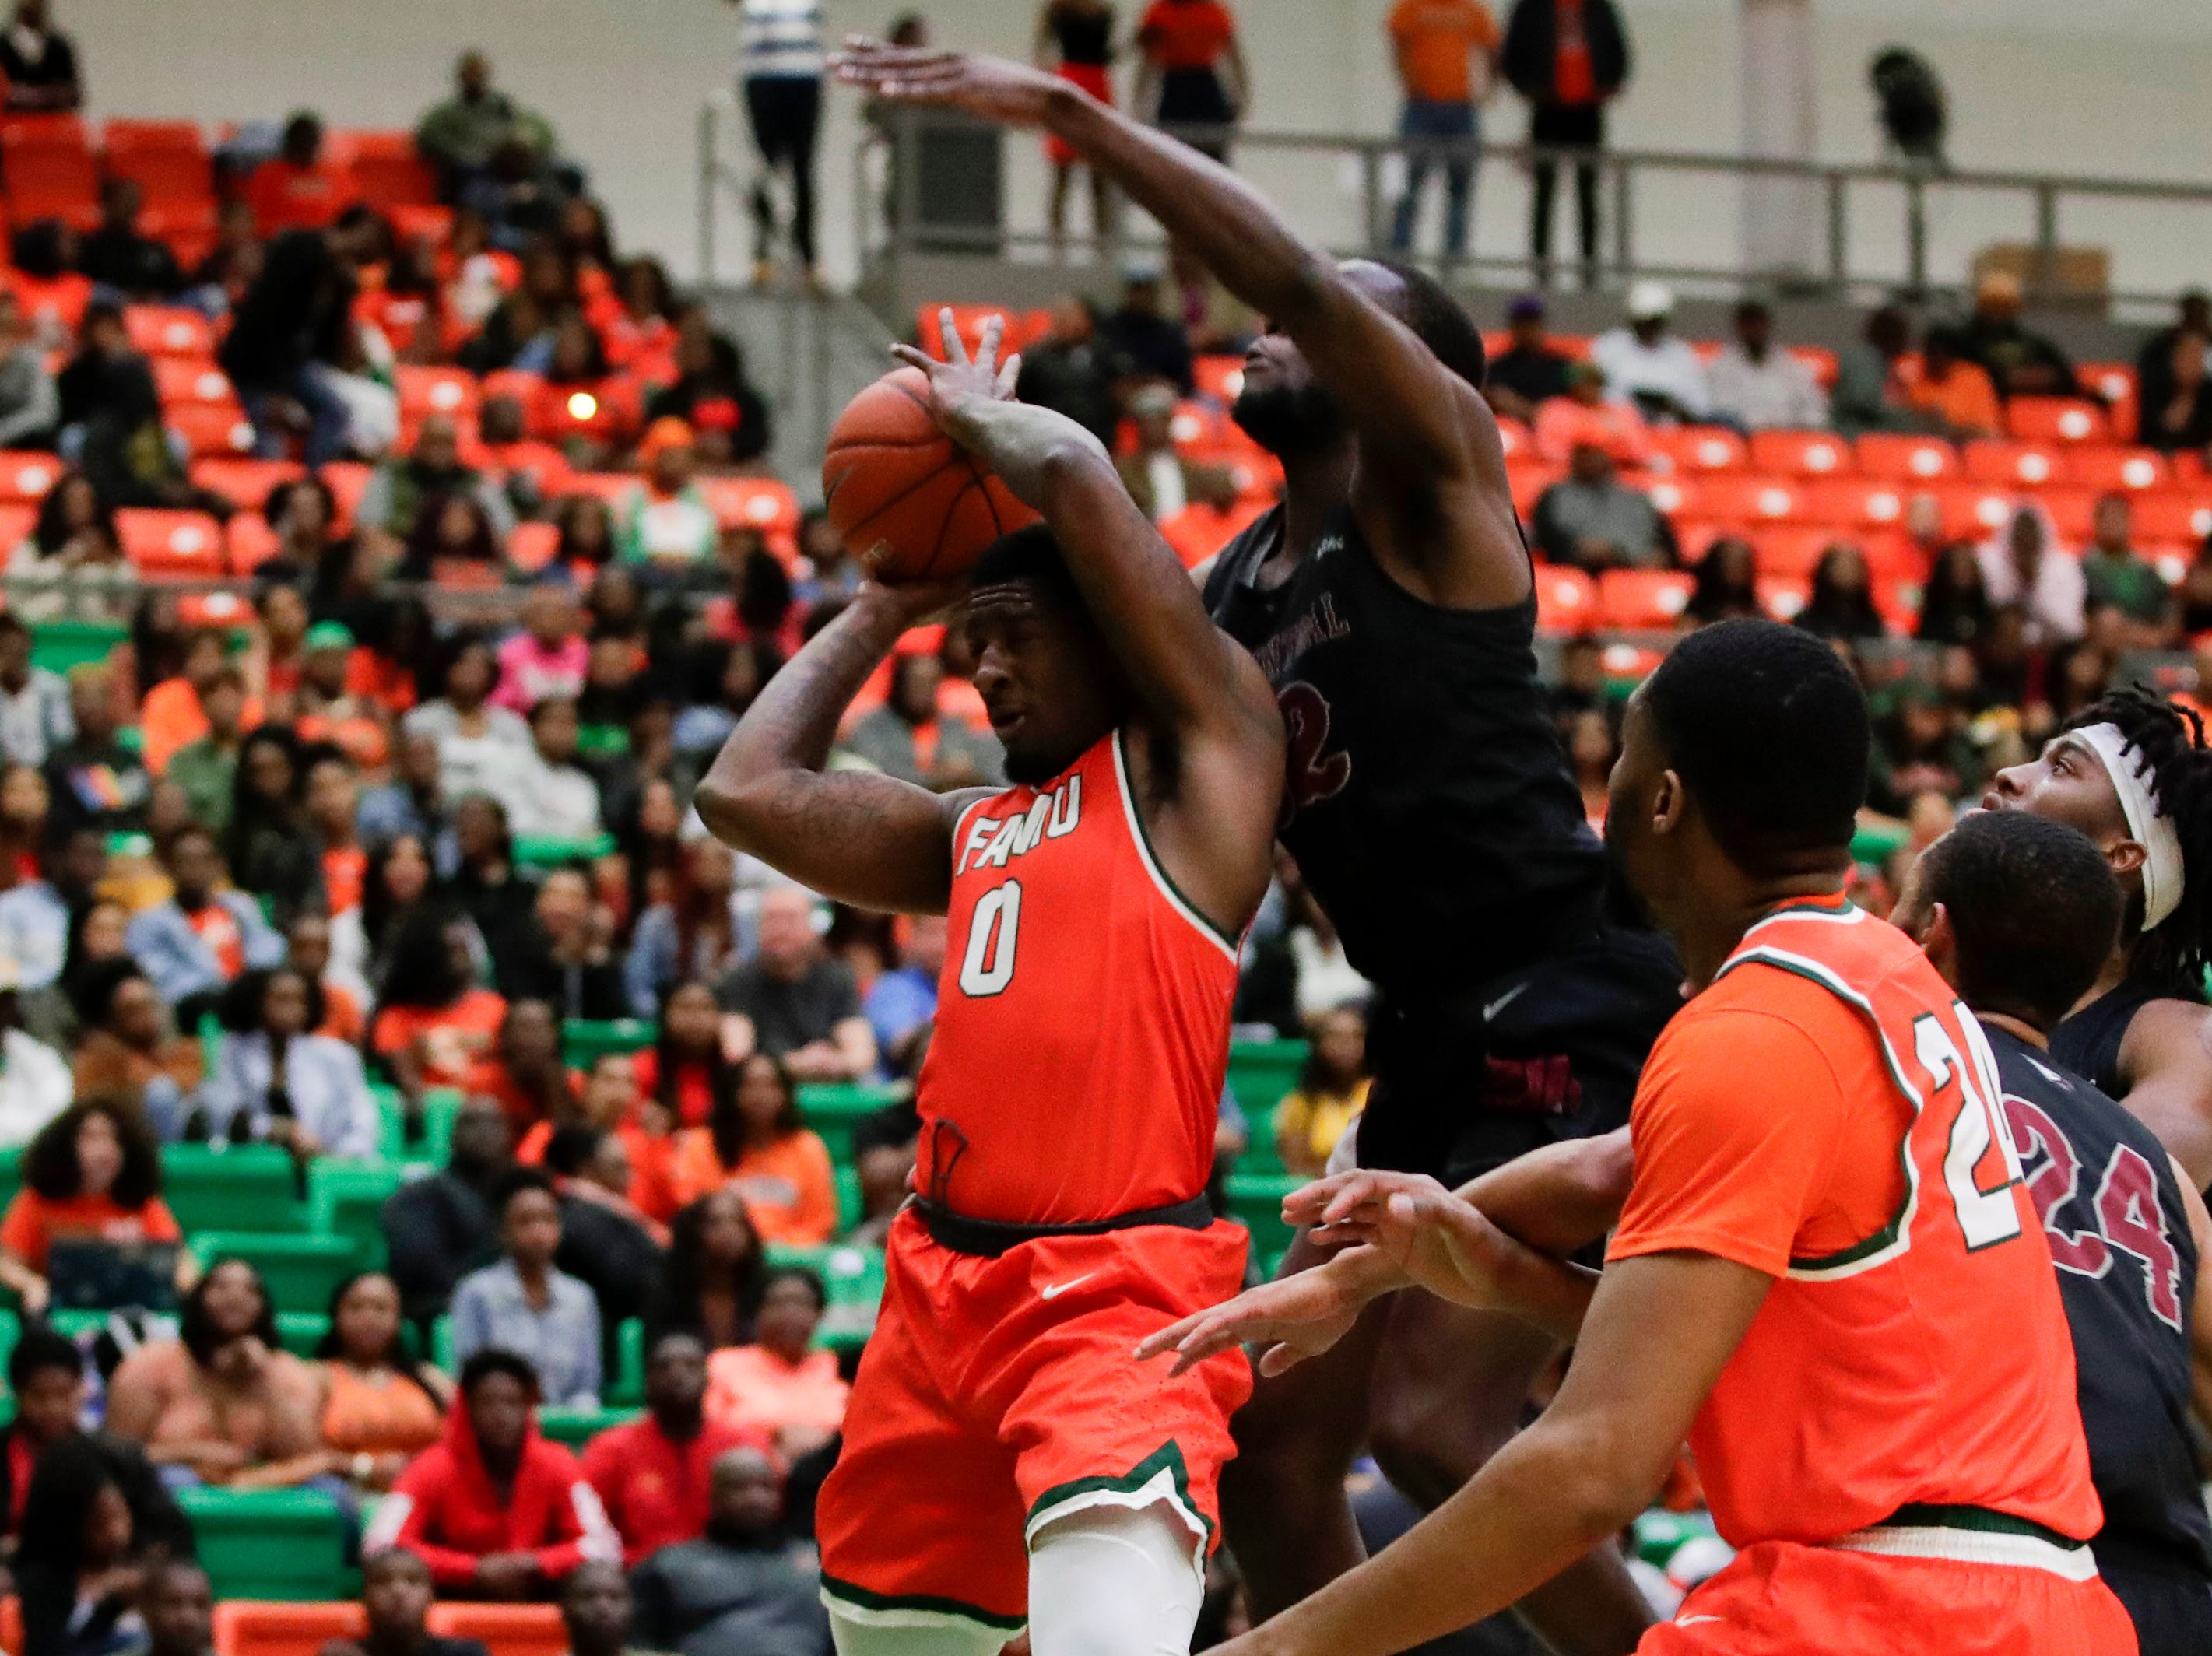 Florida A&M Rattlers forward Tracy Hector Jr. (0) gets fouled during a game between FAMU and North Carolina Central at the Alfred Lawson Jr. Multipurpose Center Monday, Feb. 4, 2019.